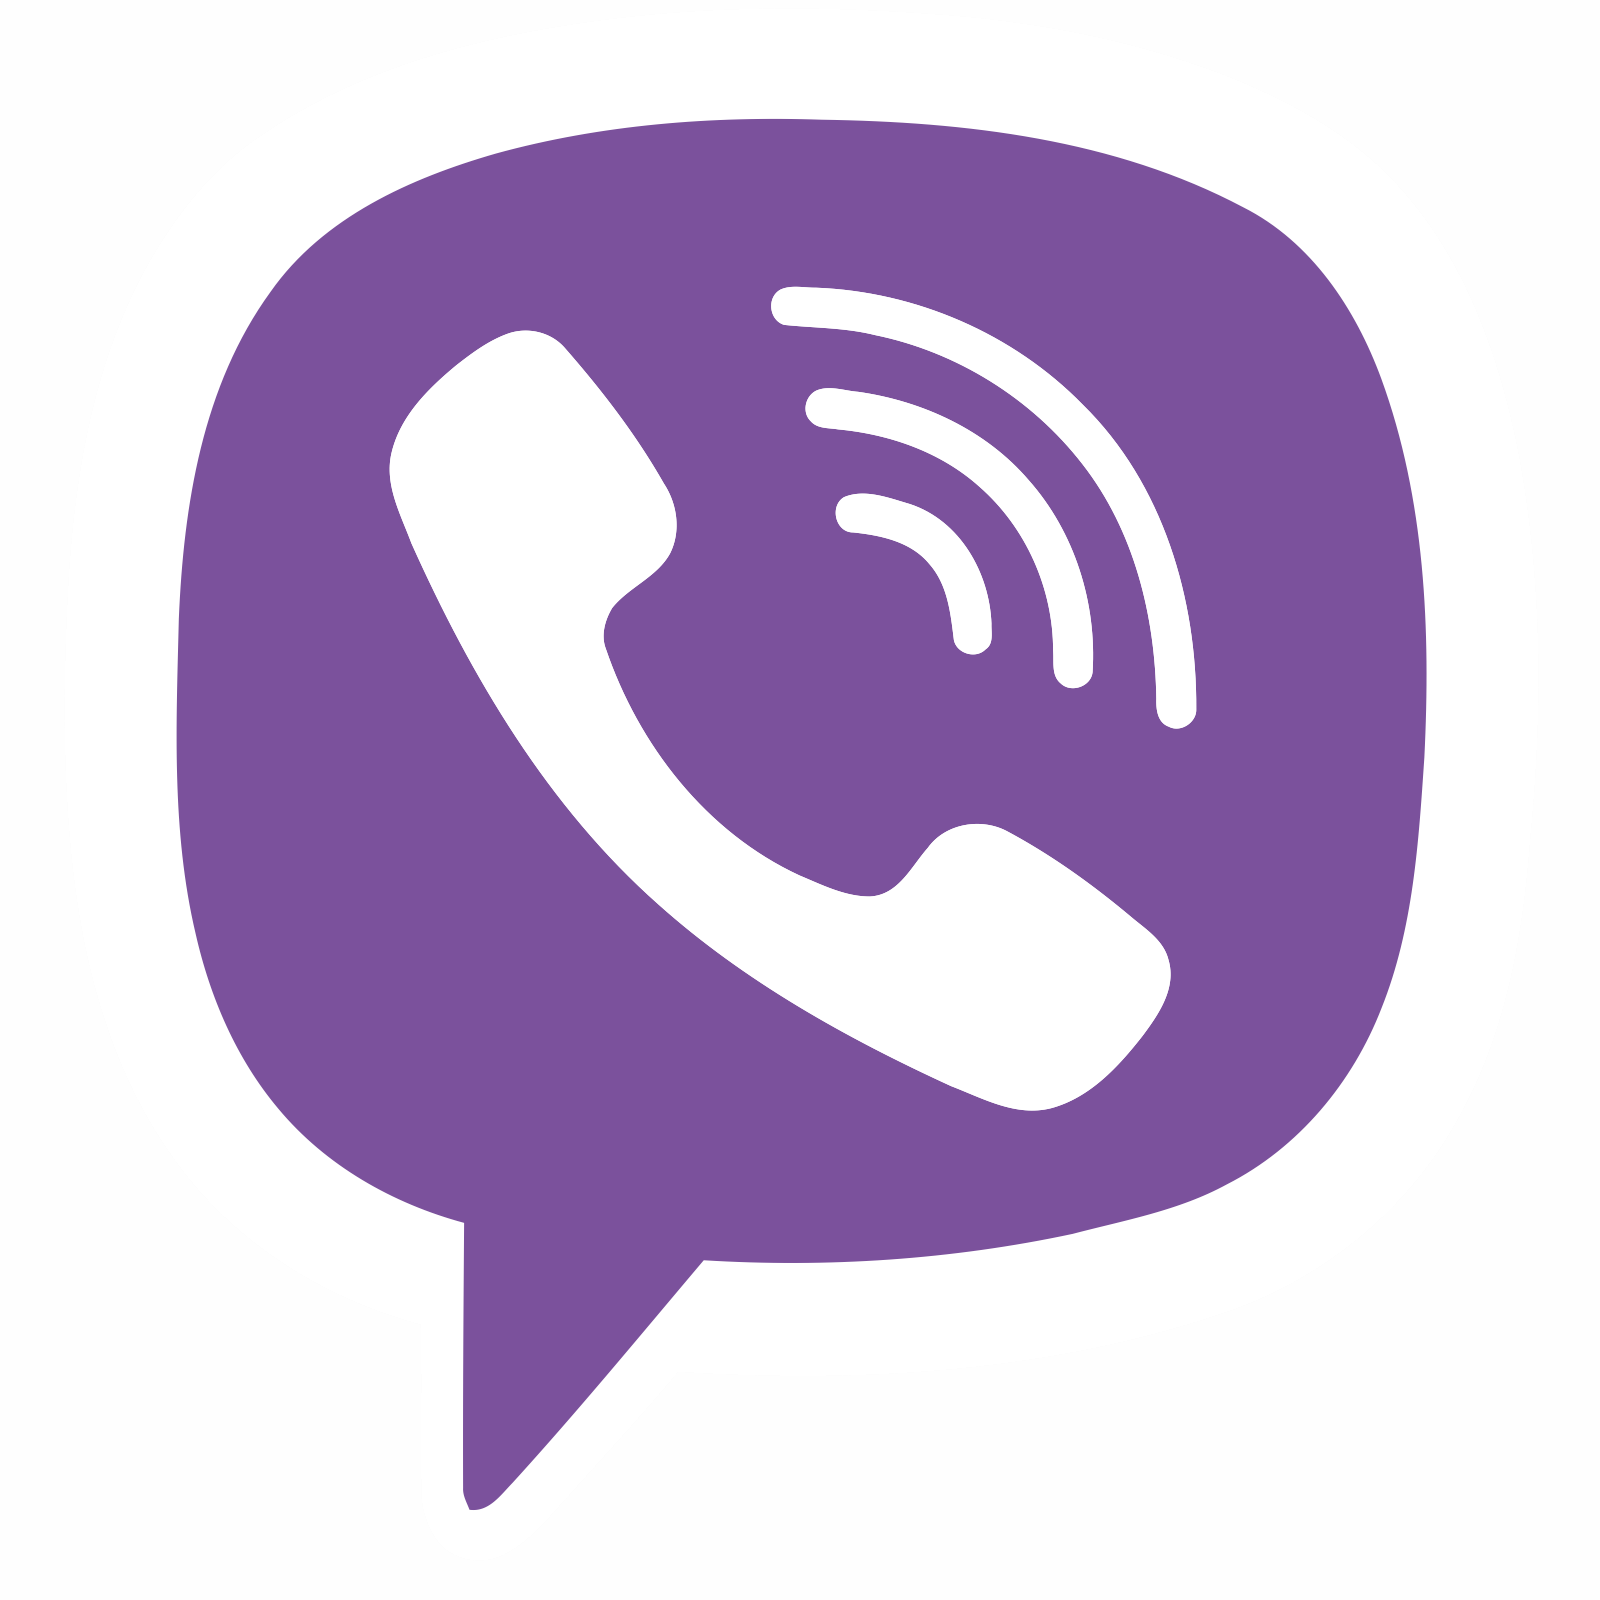 Viber App – How To Send Self Deleting Time Limited Photo or